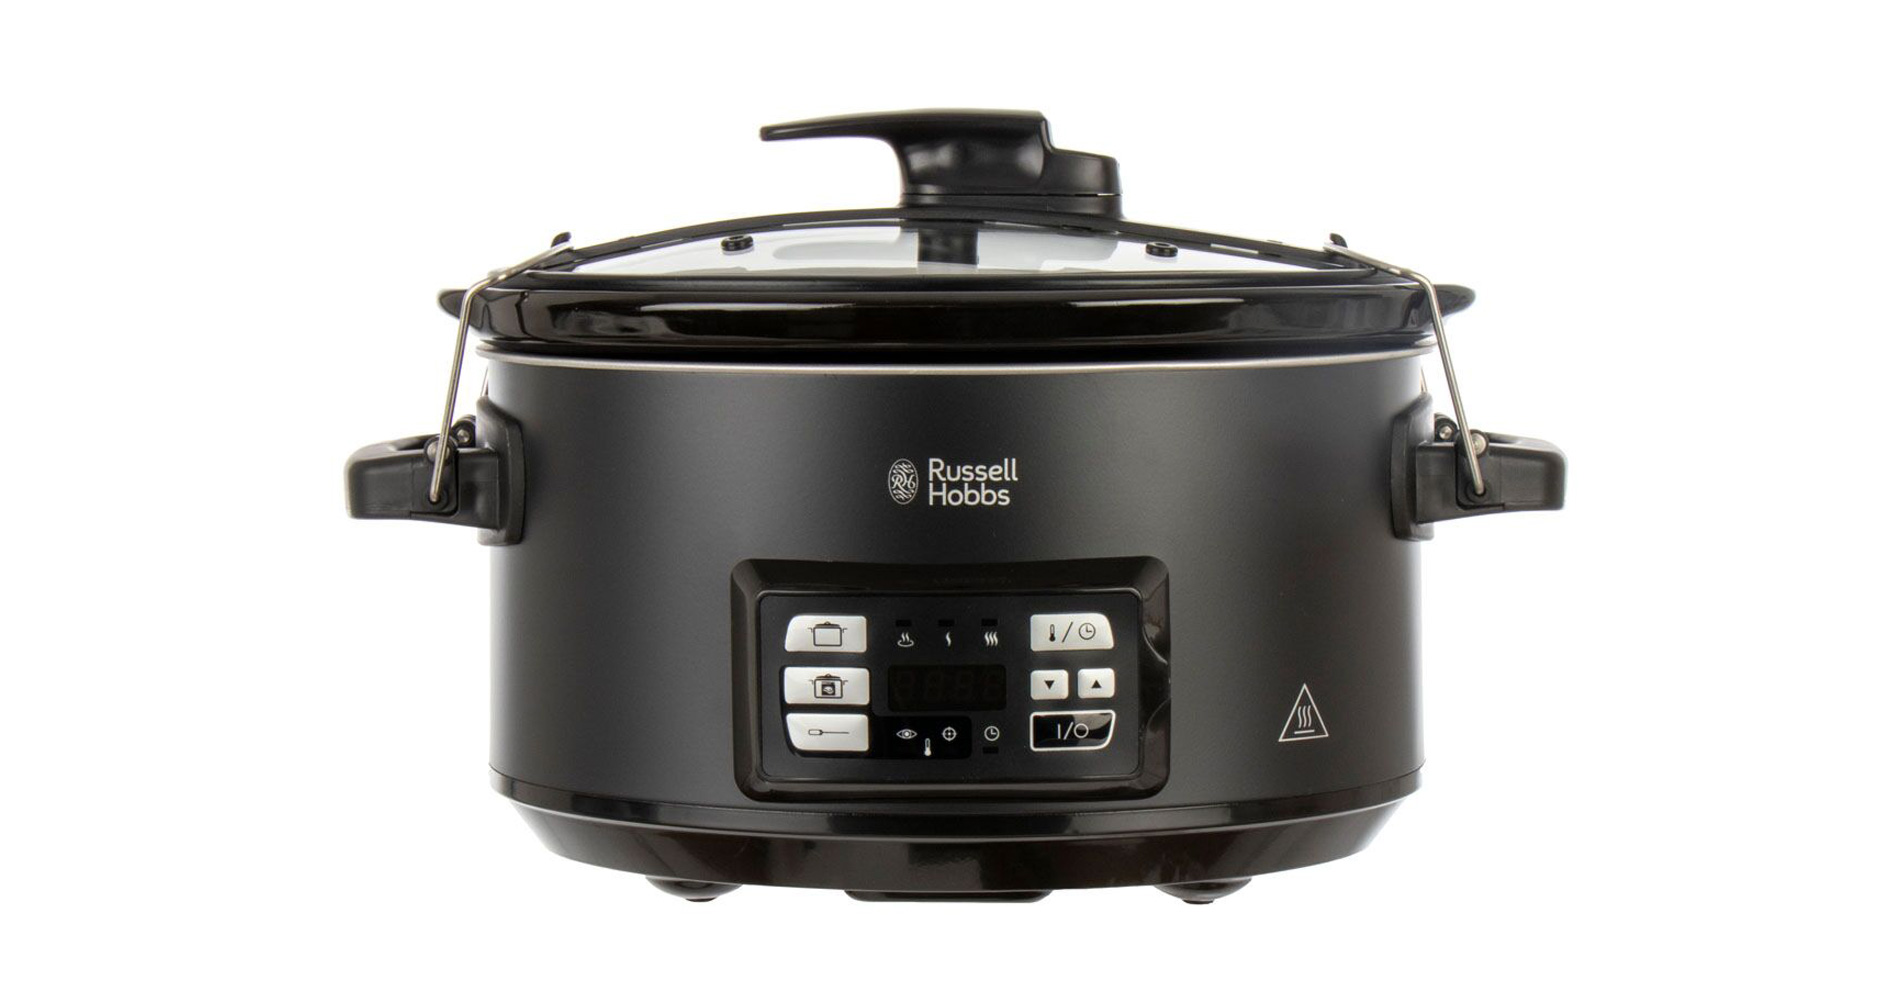 Mijoteuse sous vide Russell Hobbs